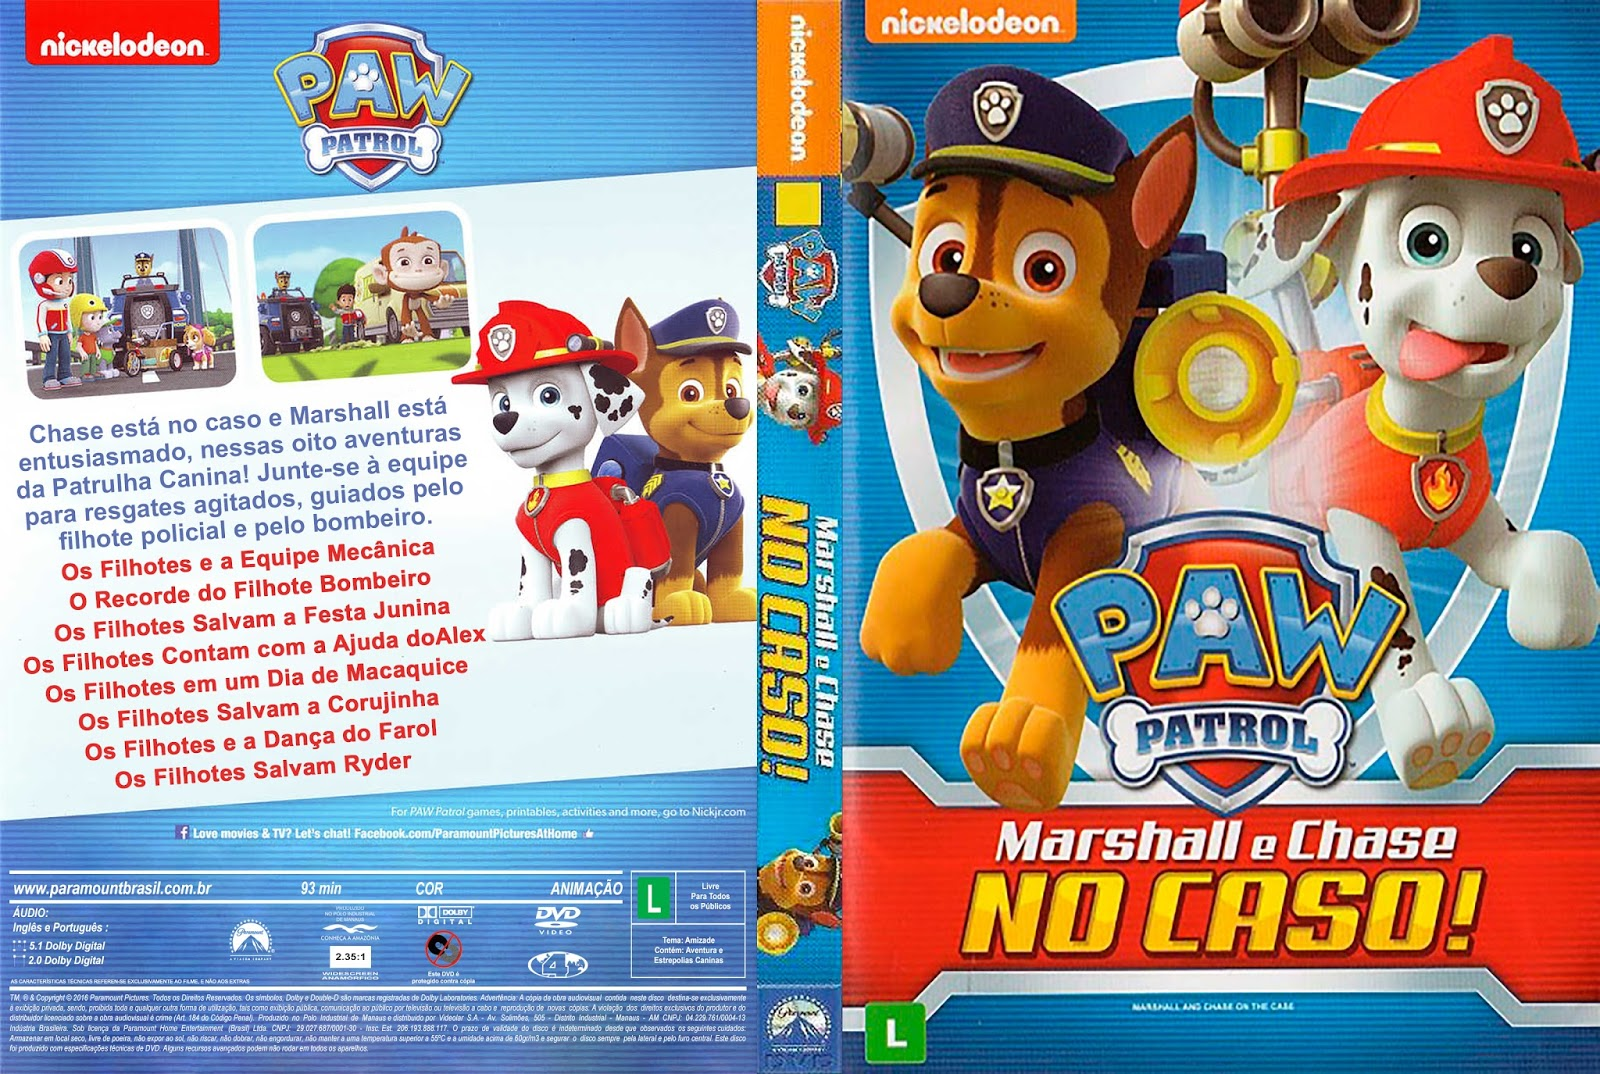 Download Patrulha Canina Marshall e Chase no Caso! DVD-R